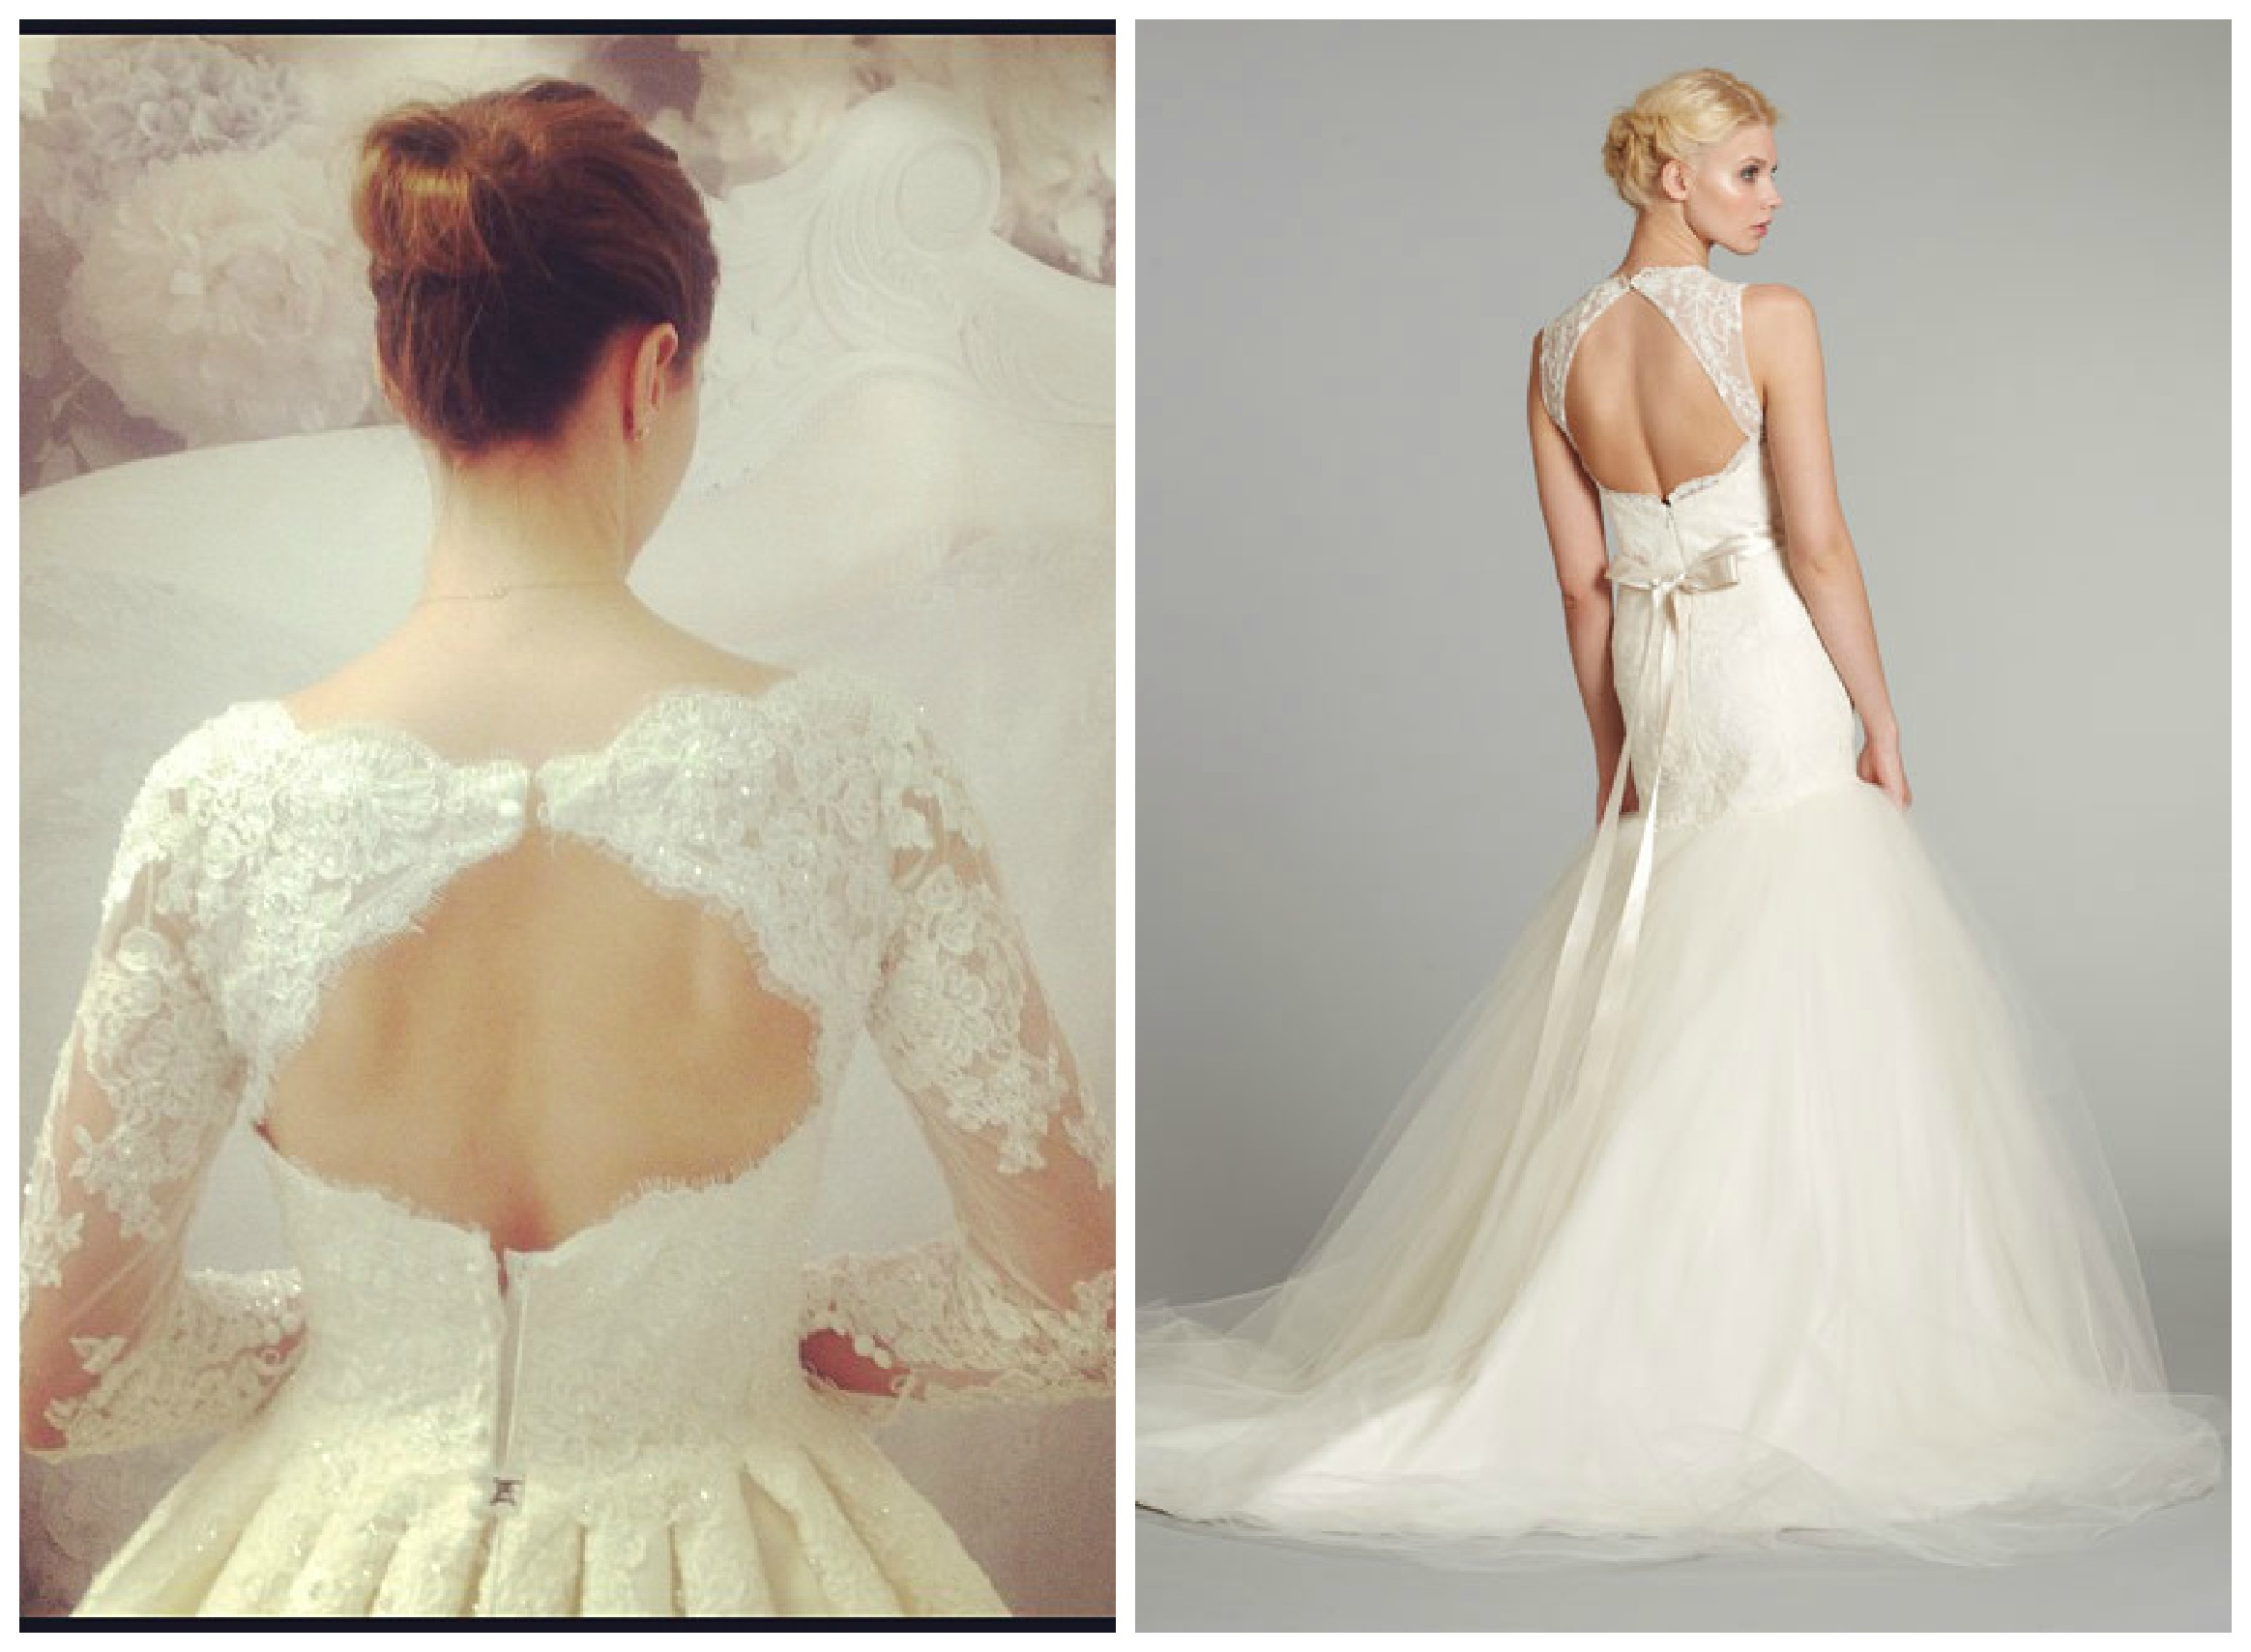 Top 10 wedding dress trends for 2013 uptowngirl fashion for Top 10 most beautiful wedding dresses